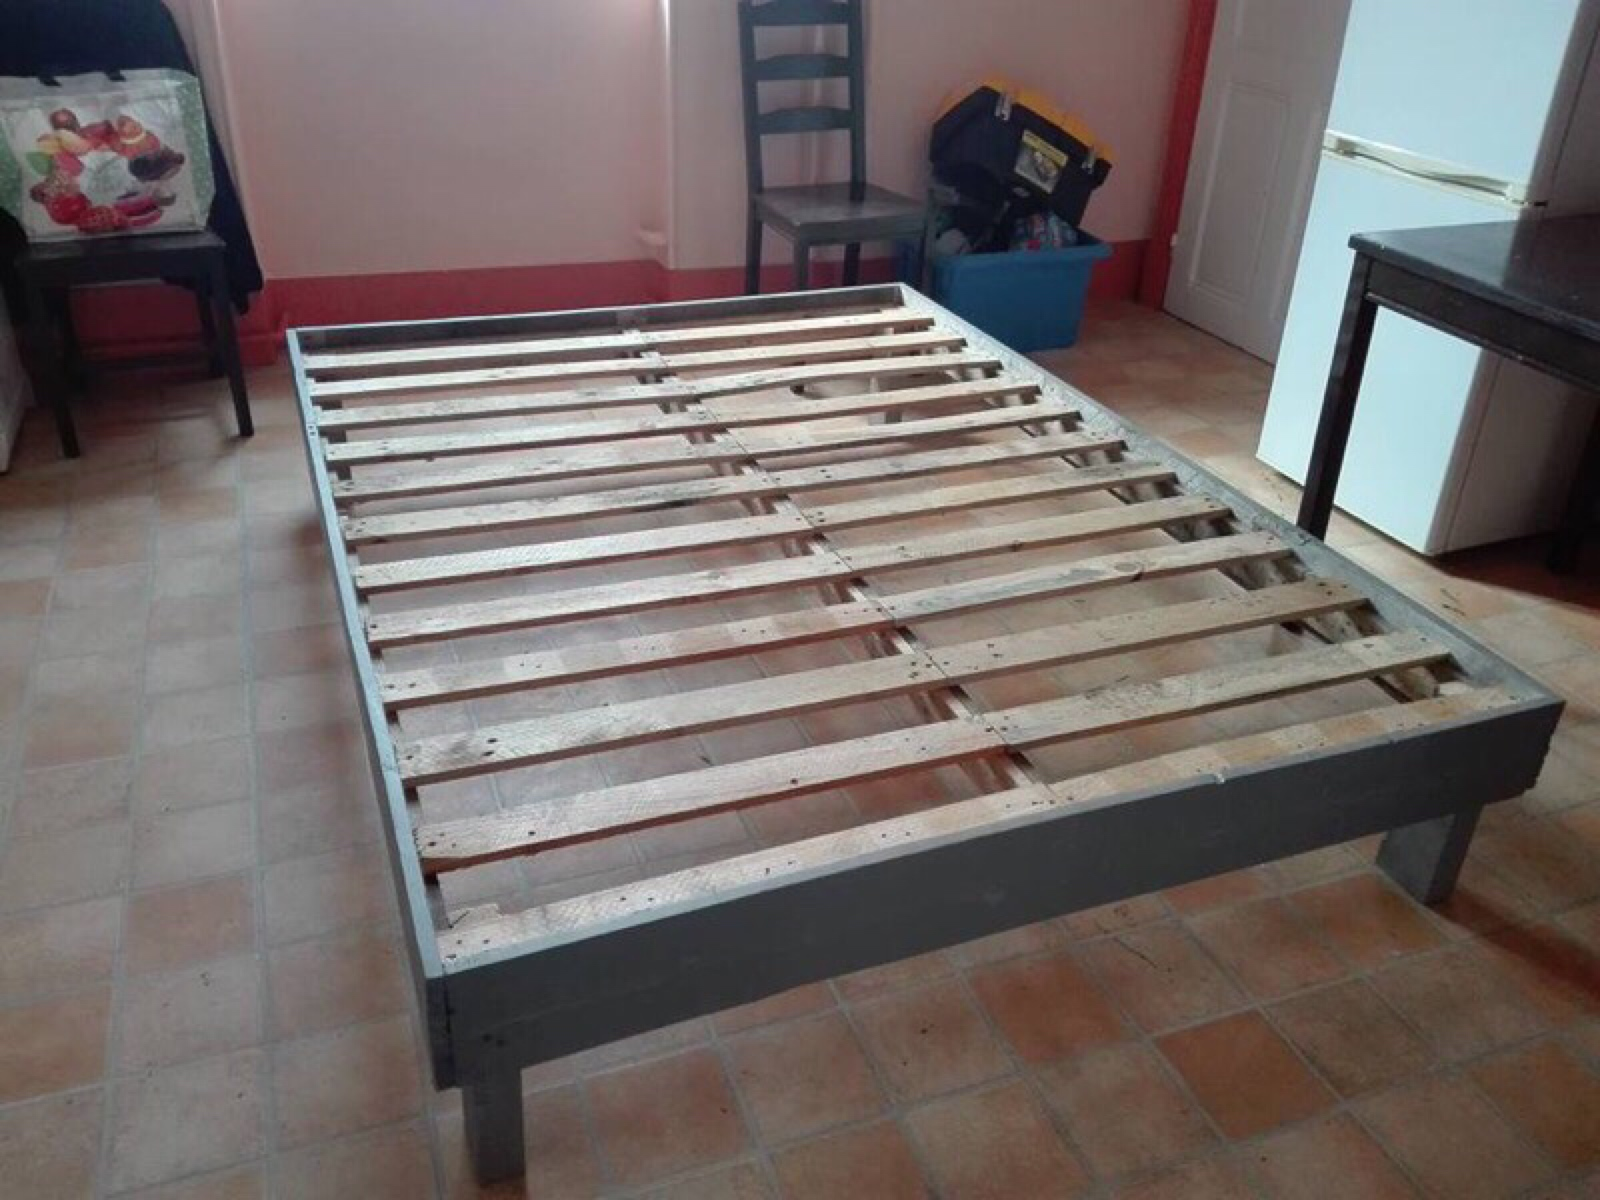 Bedframe Made With PalletsDIY Pallet Furniture DIY Pallet Furniture